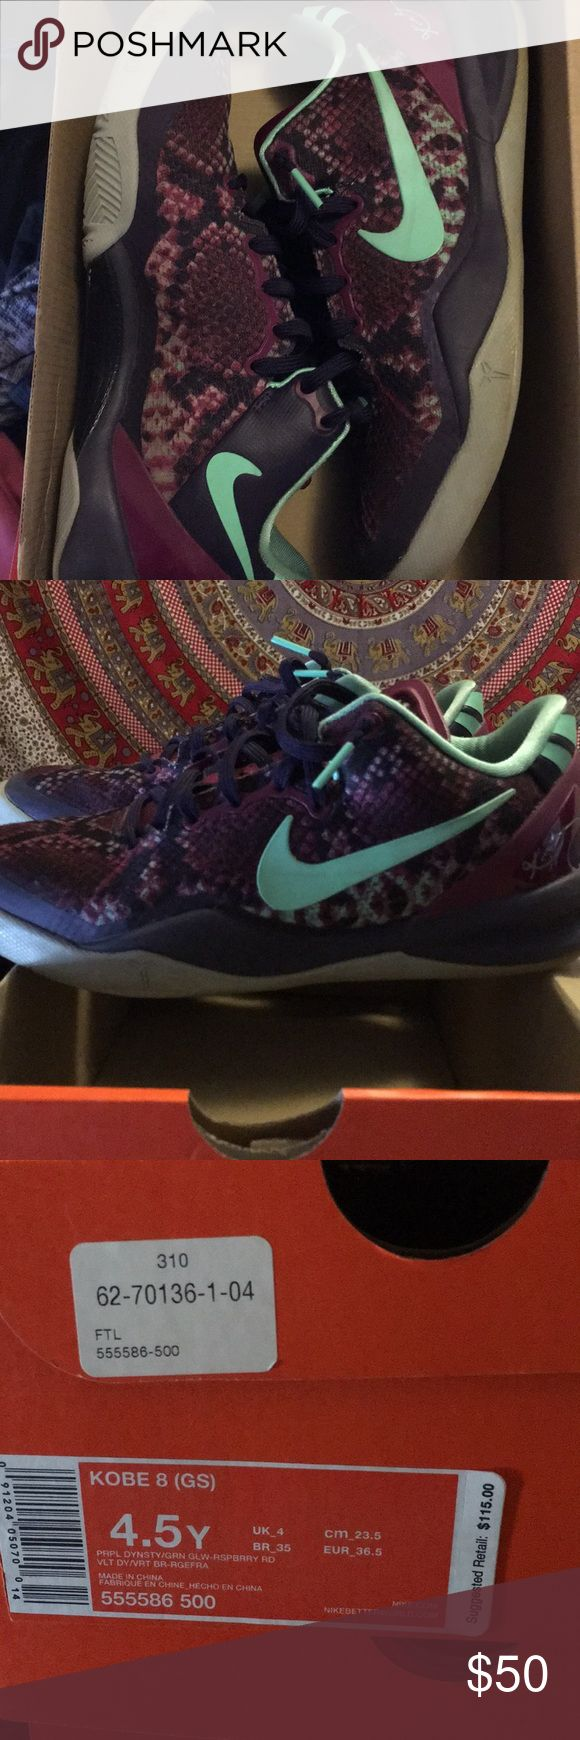 Kobe 8s youth size 4.5 Perfect condition Kobe 8s with purple snake skin print Nike Shoes Sneakers